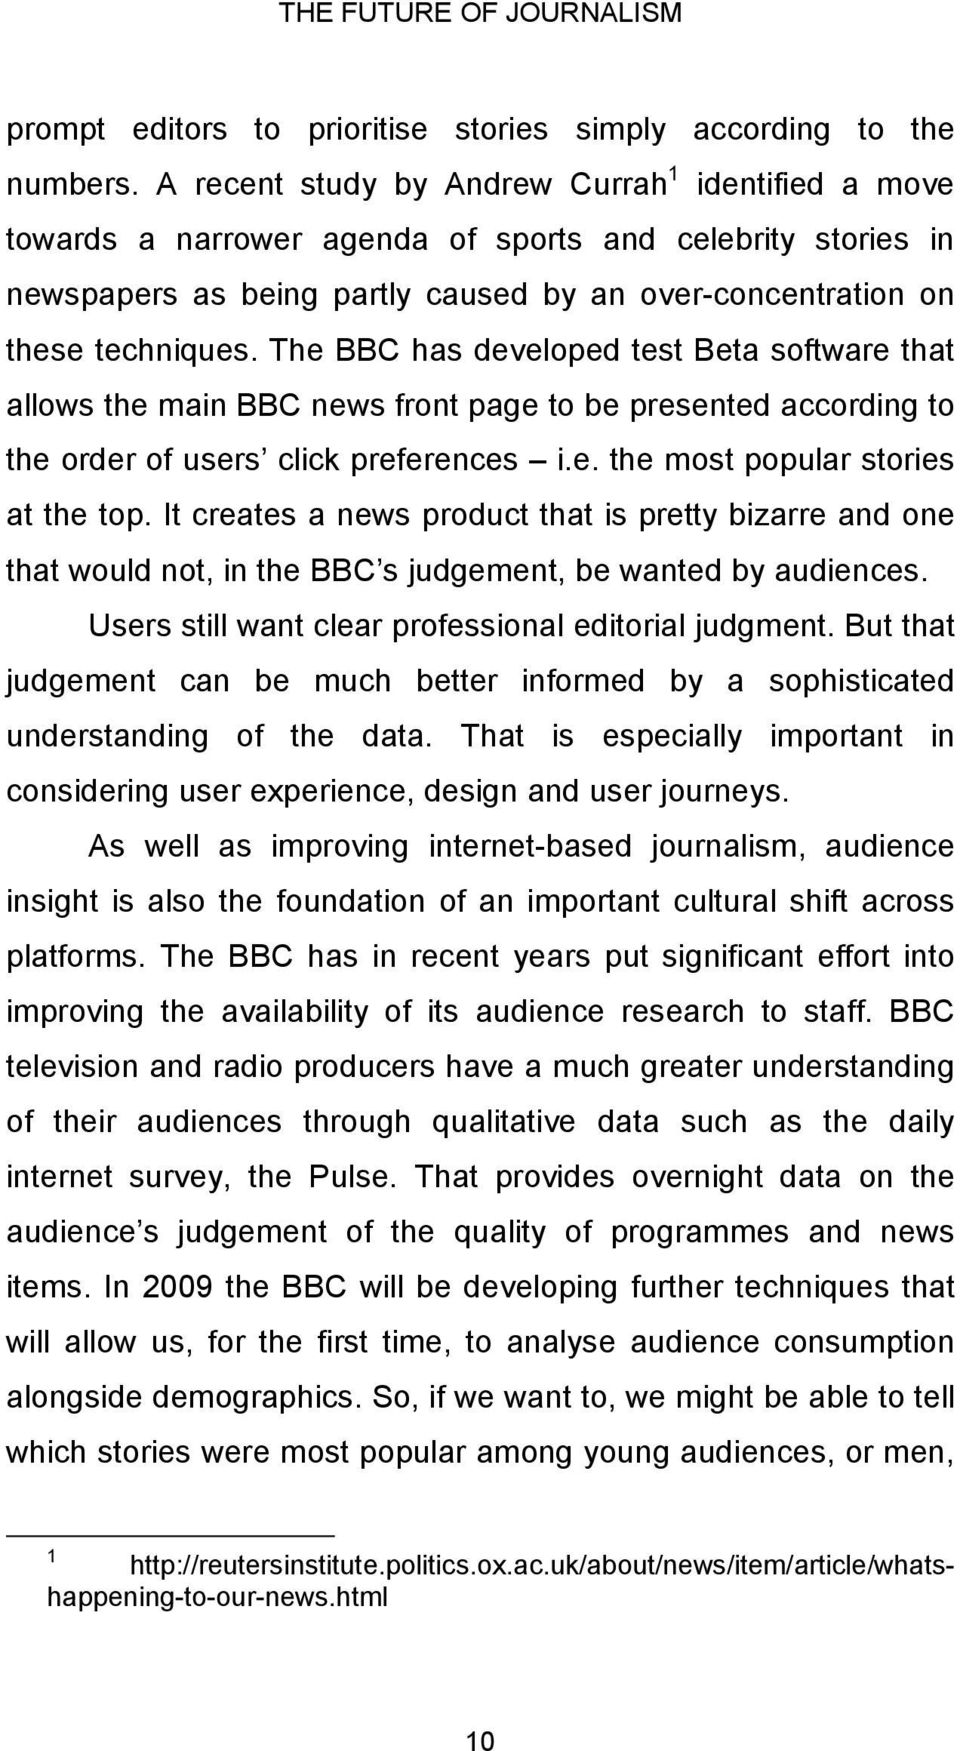 The BBC has developed test Beta software that allows the main BBC news front page to be presented according to the order of users click preferences i.e. the most popular stories at the top.